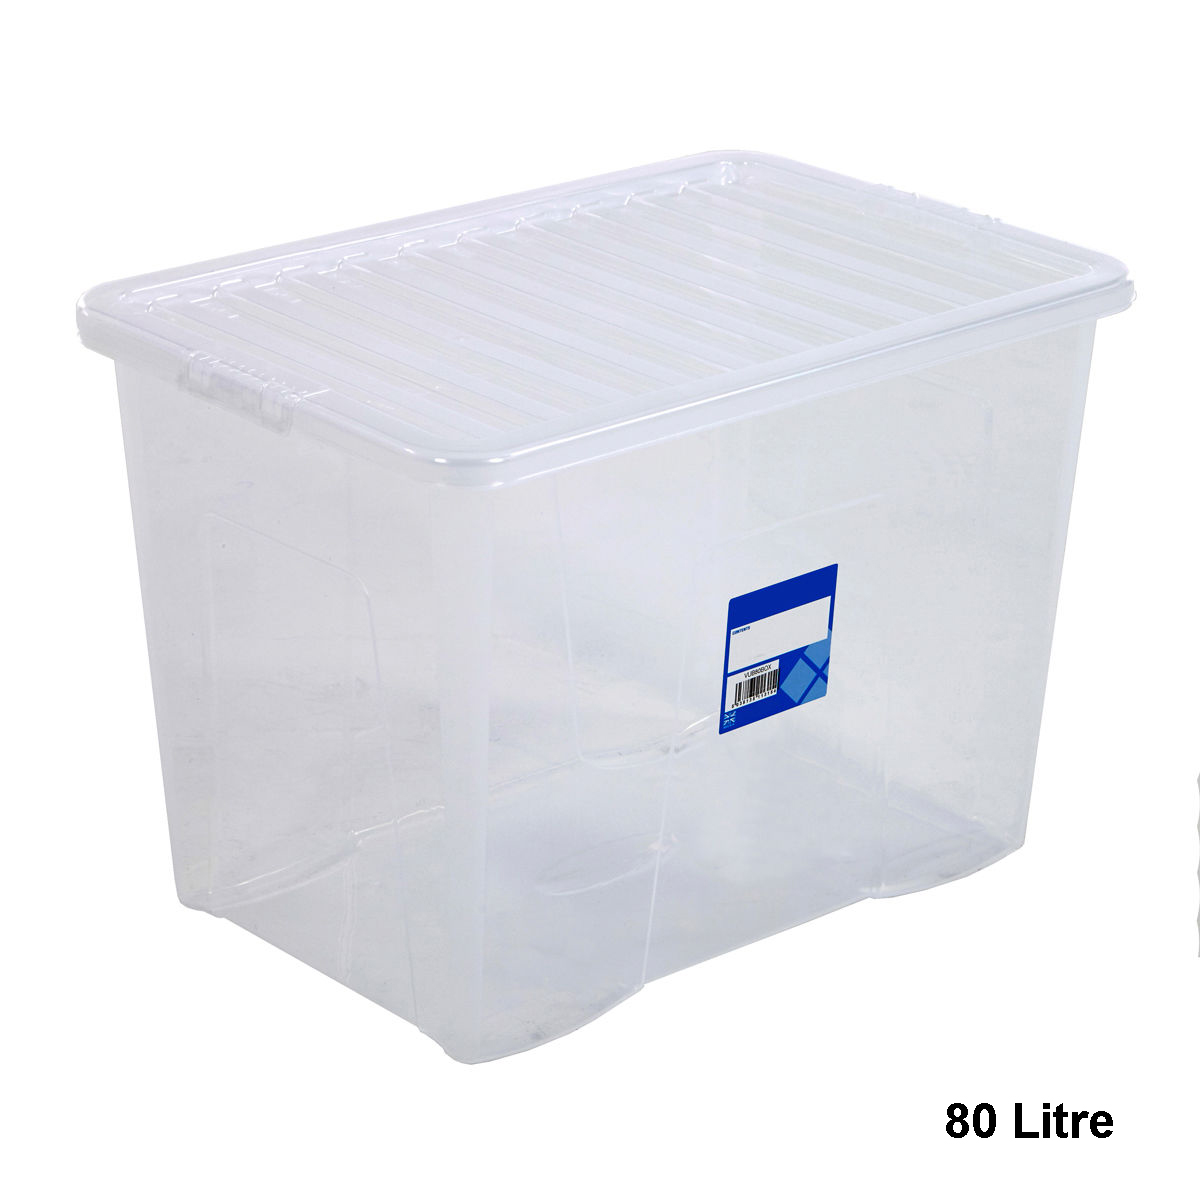 Clear Plastic Storage Boxes Box Containers With Lids